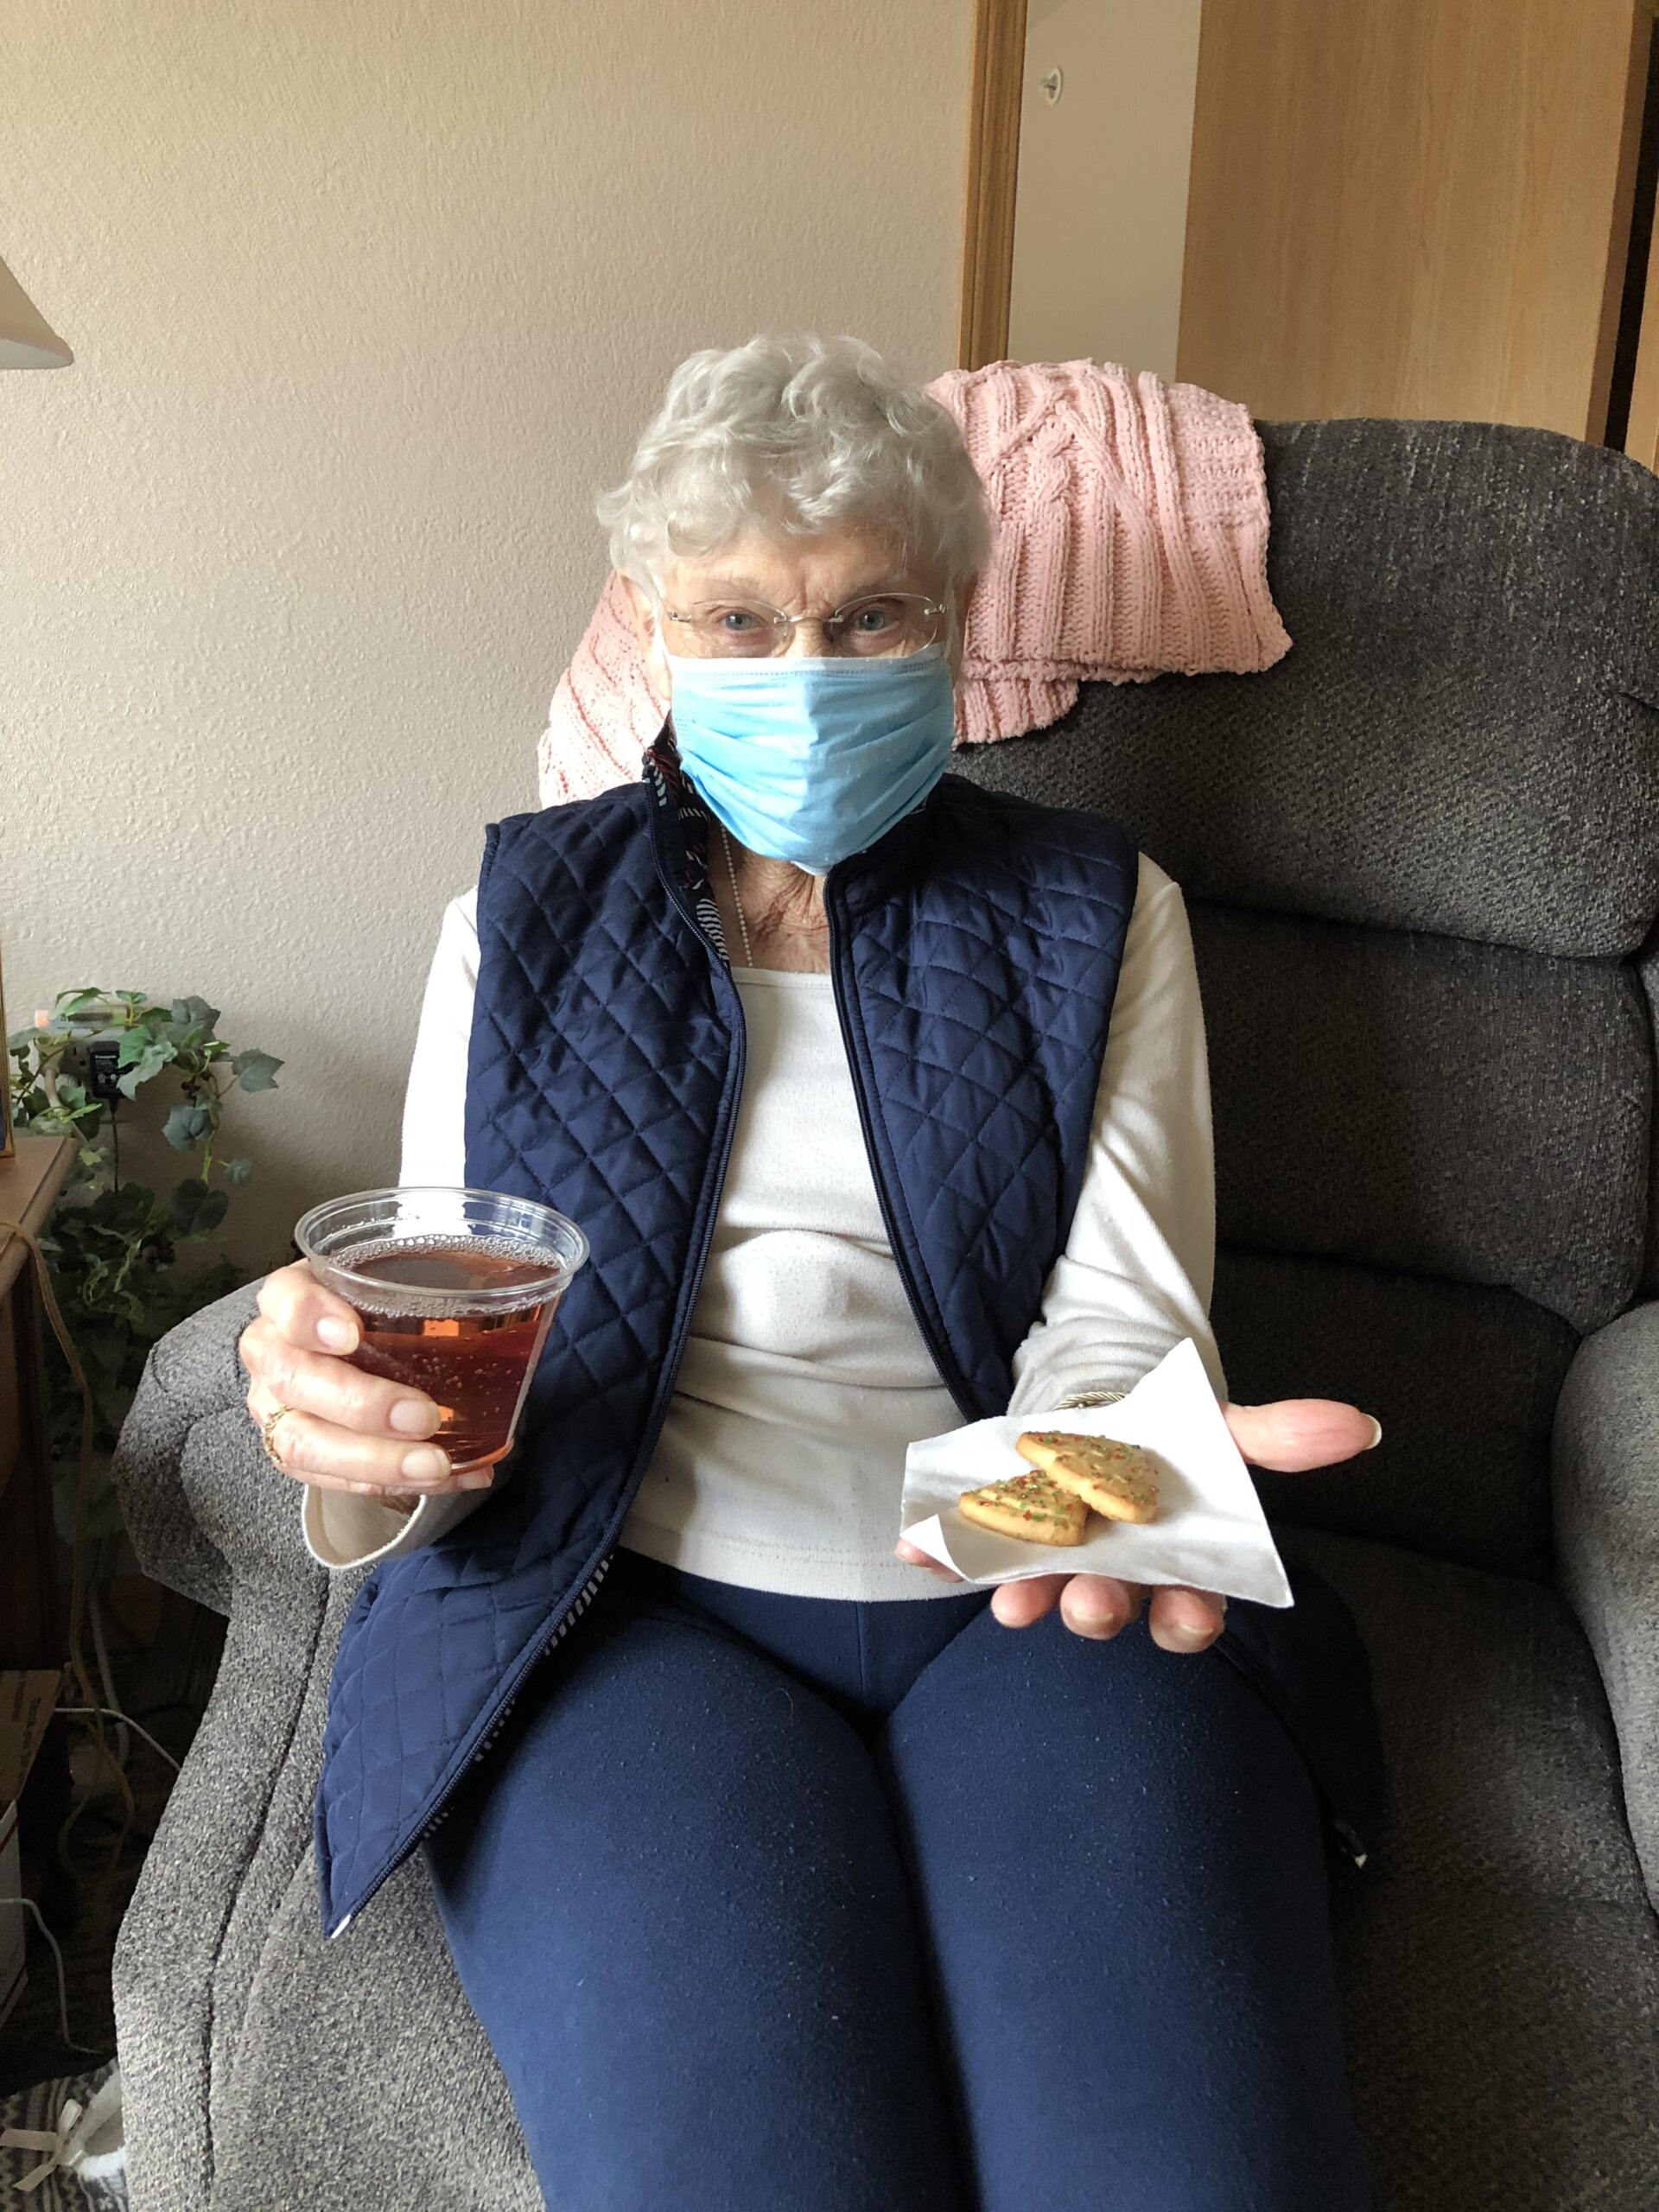 Peggy enjoying her wine and holiday cookies!